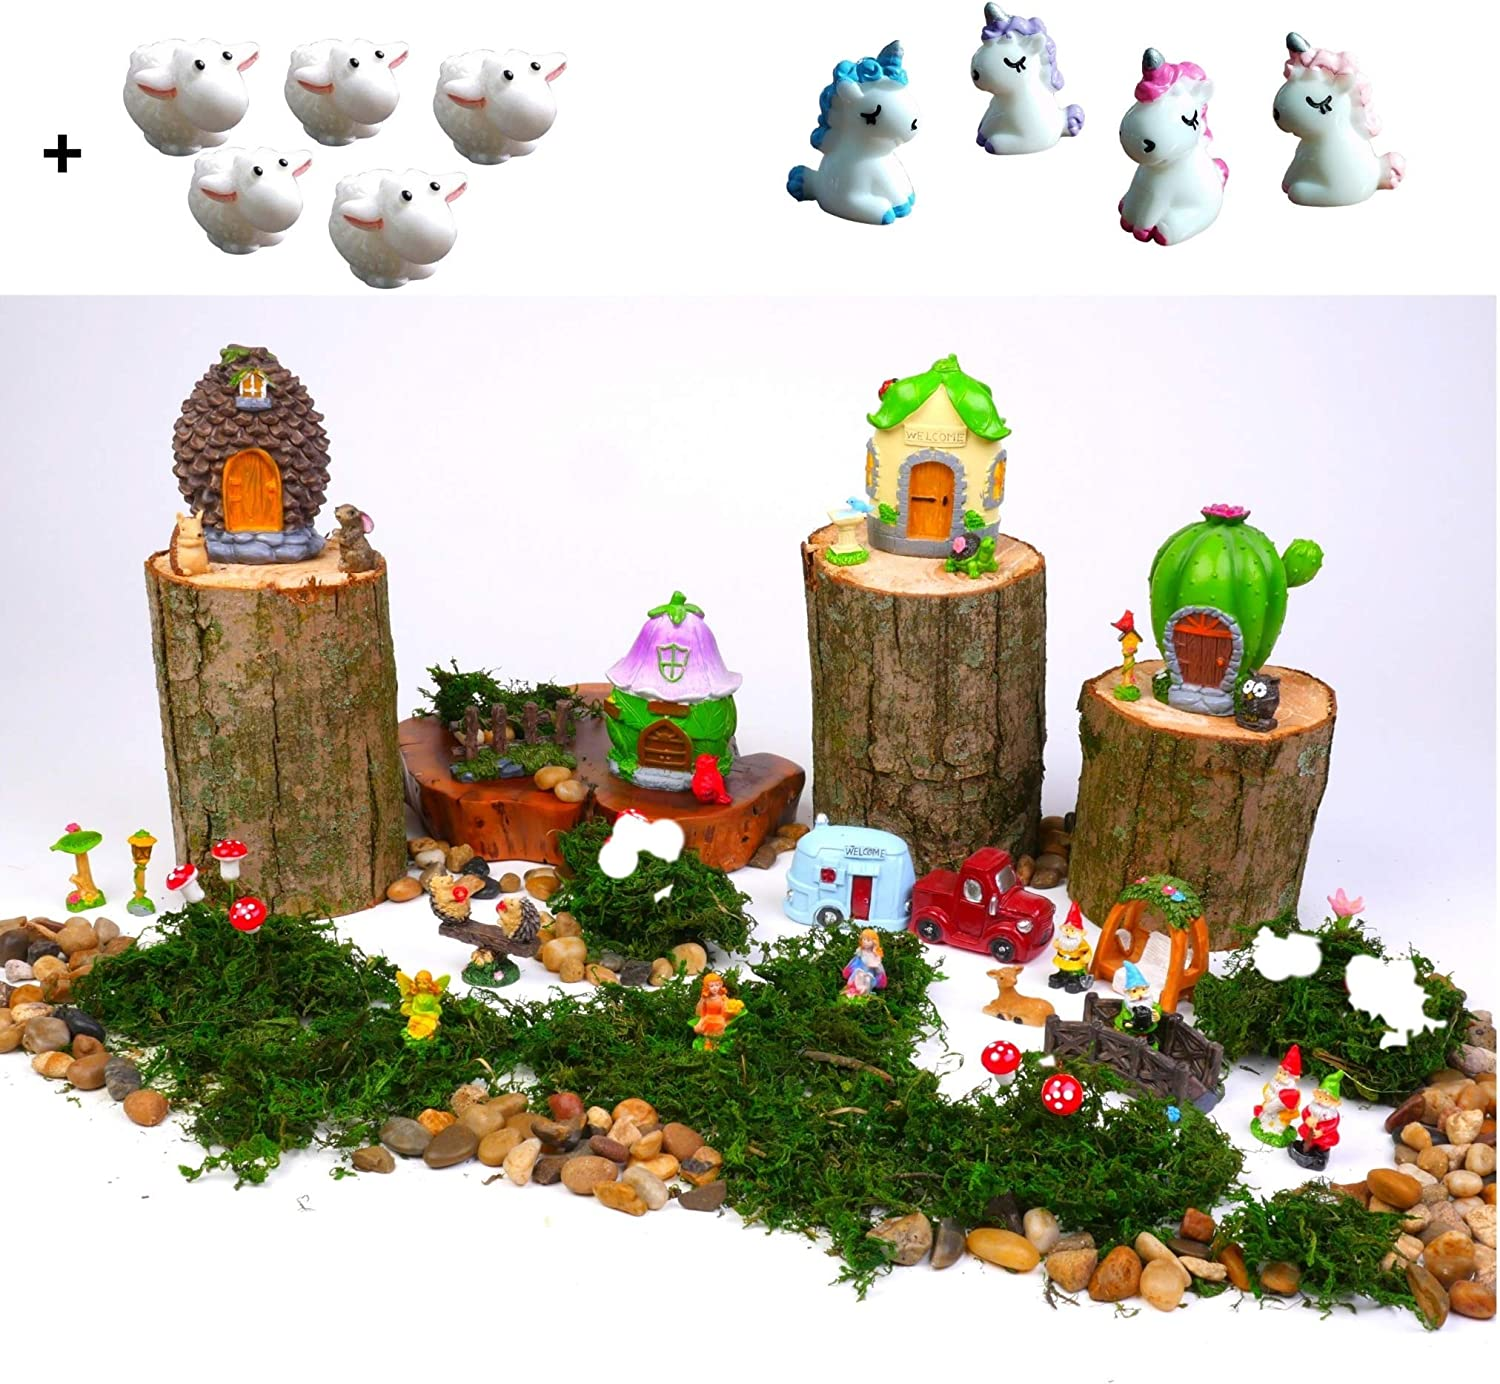 Ellie Arts Mini Fairy Garden Kit for Girls & Boys with Accessories, Decor Includes Houses, Fairies Figurines, Unicorn, Animals, Moss, All Supplies for Indoor or Outdoor. red Truck & Camper Too! 42pcs